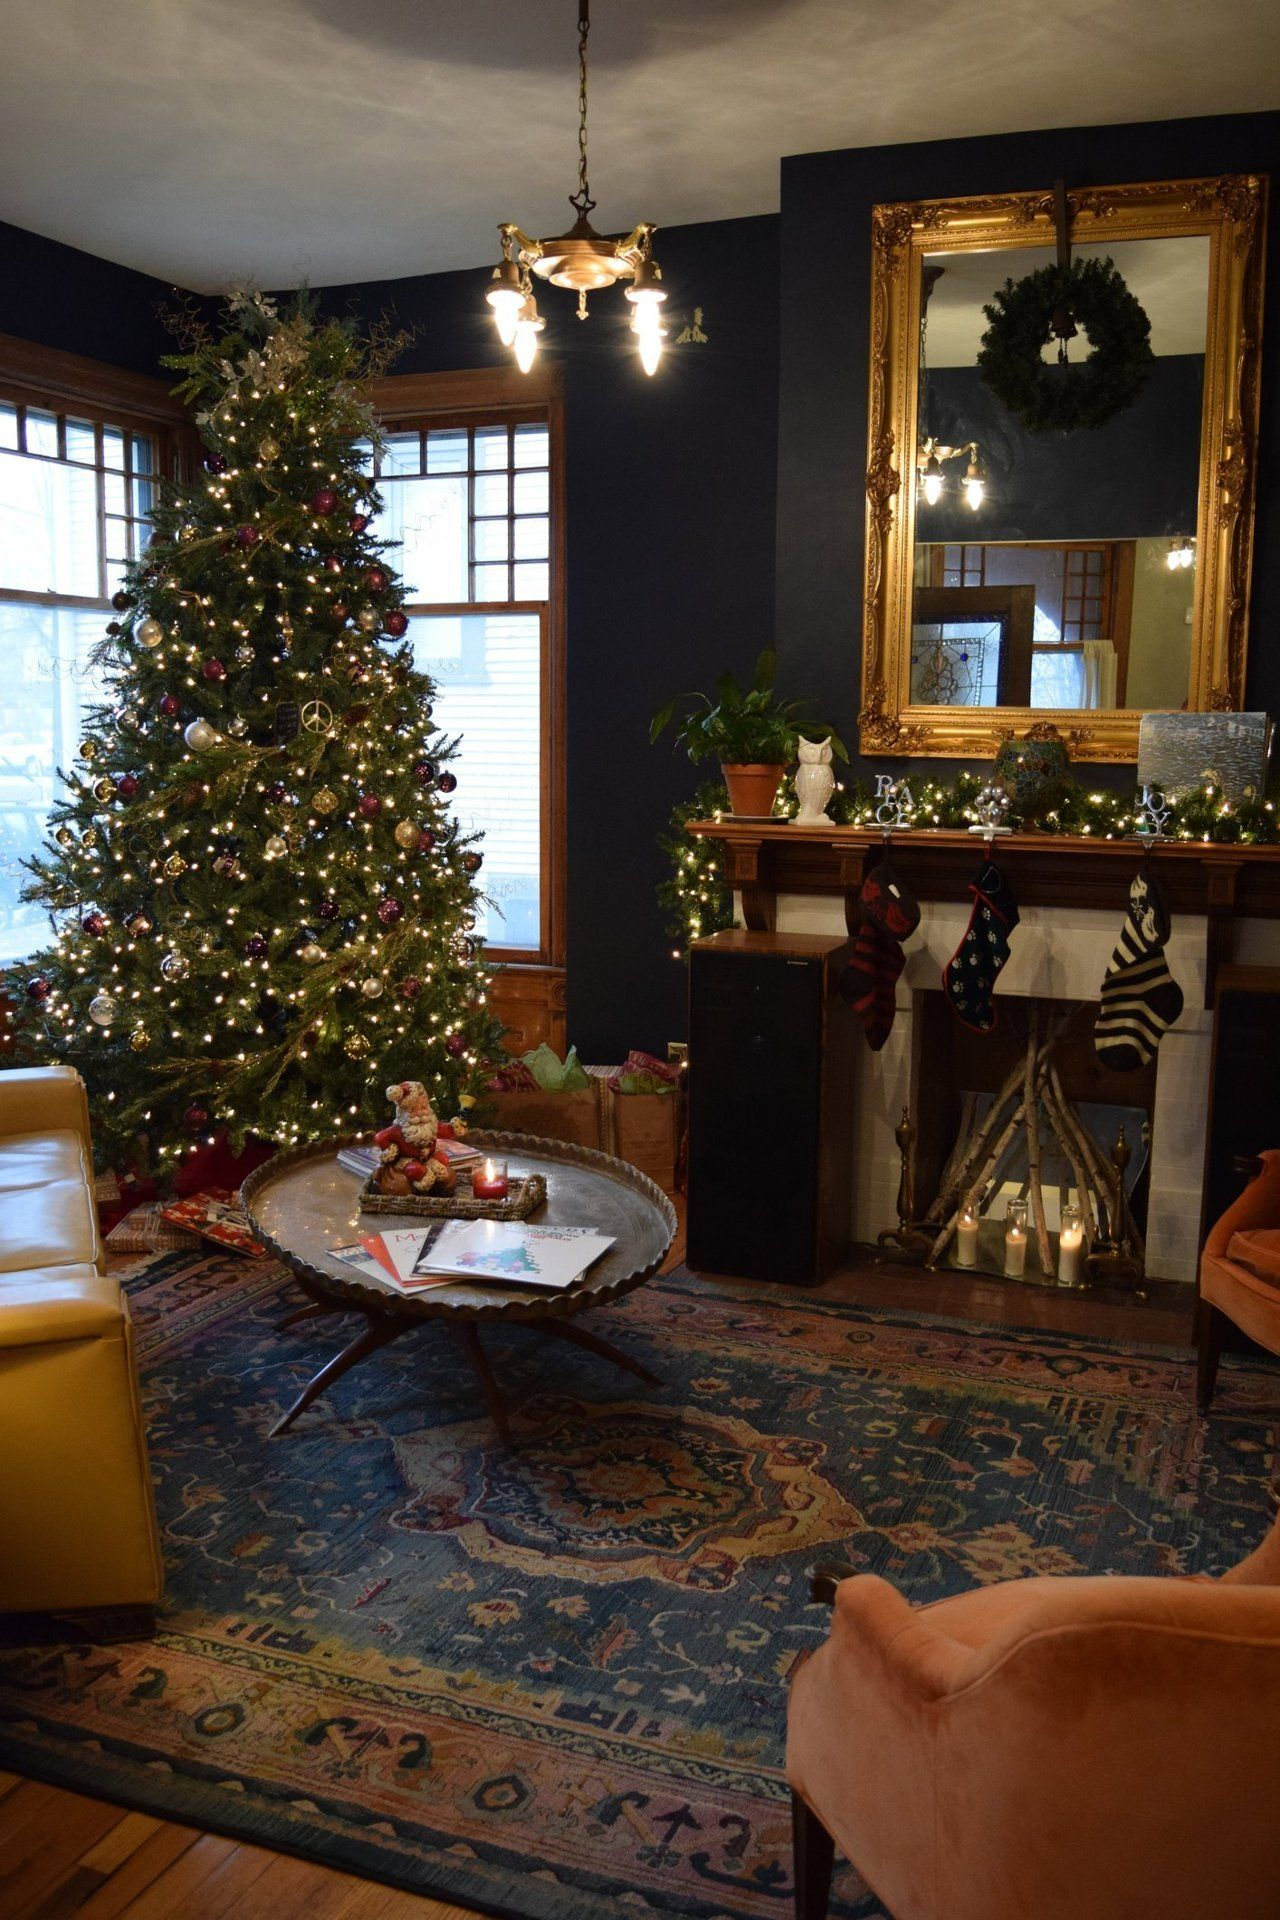 Meagen & Mike's Cherry Hill Victorian Decorated for the Holidays